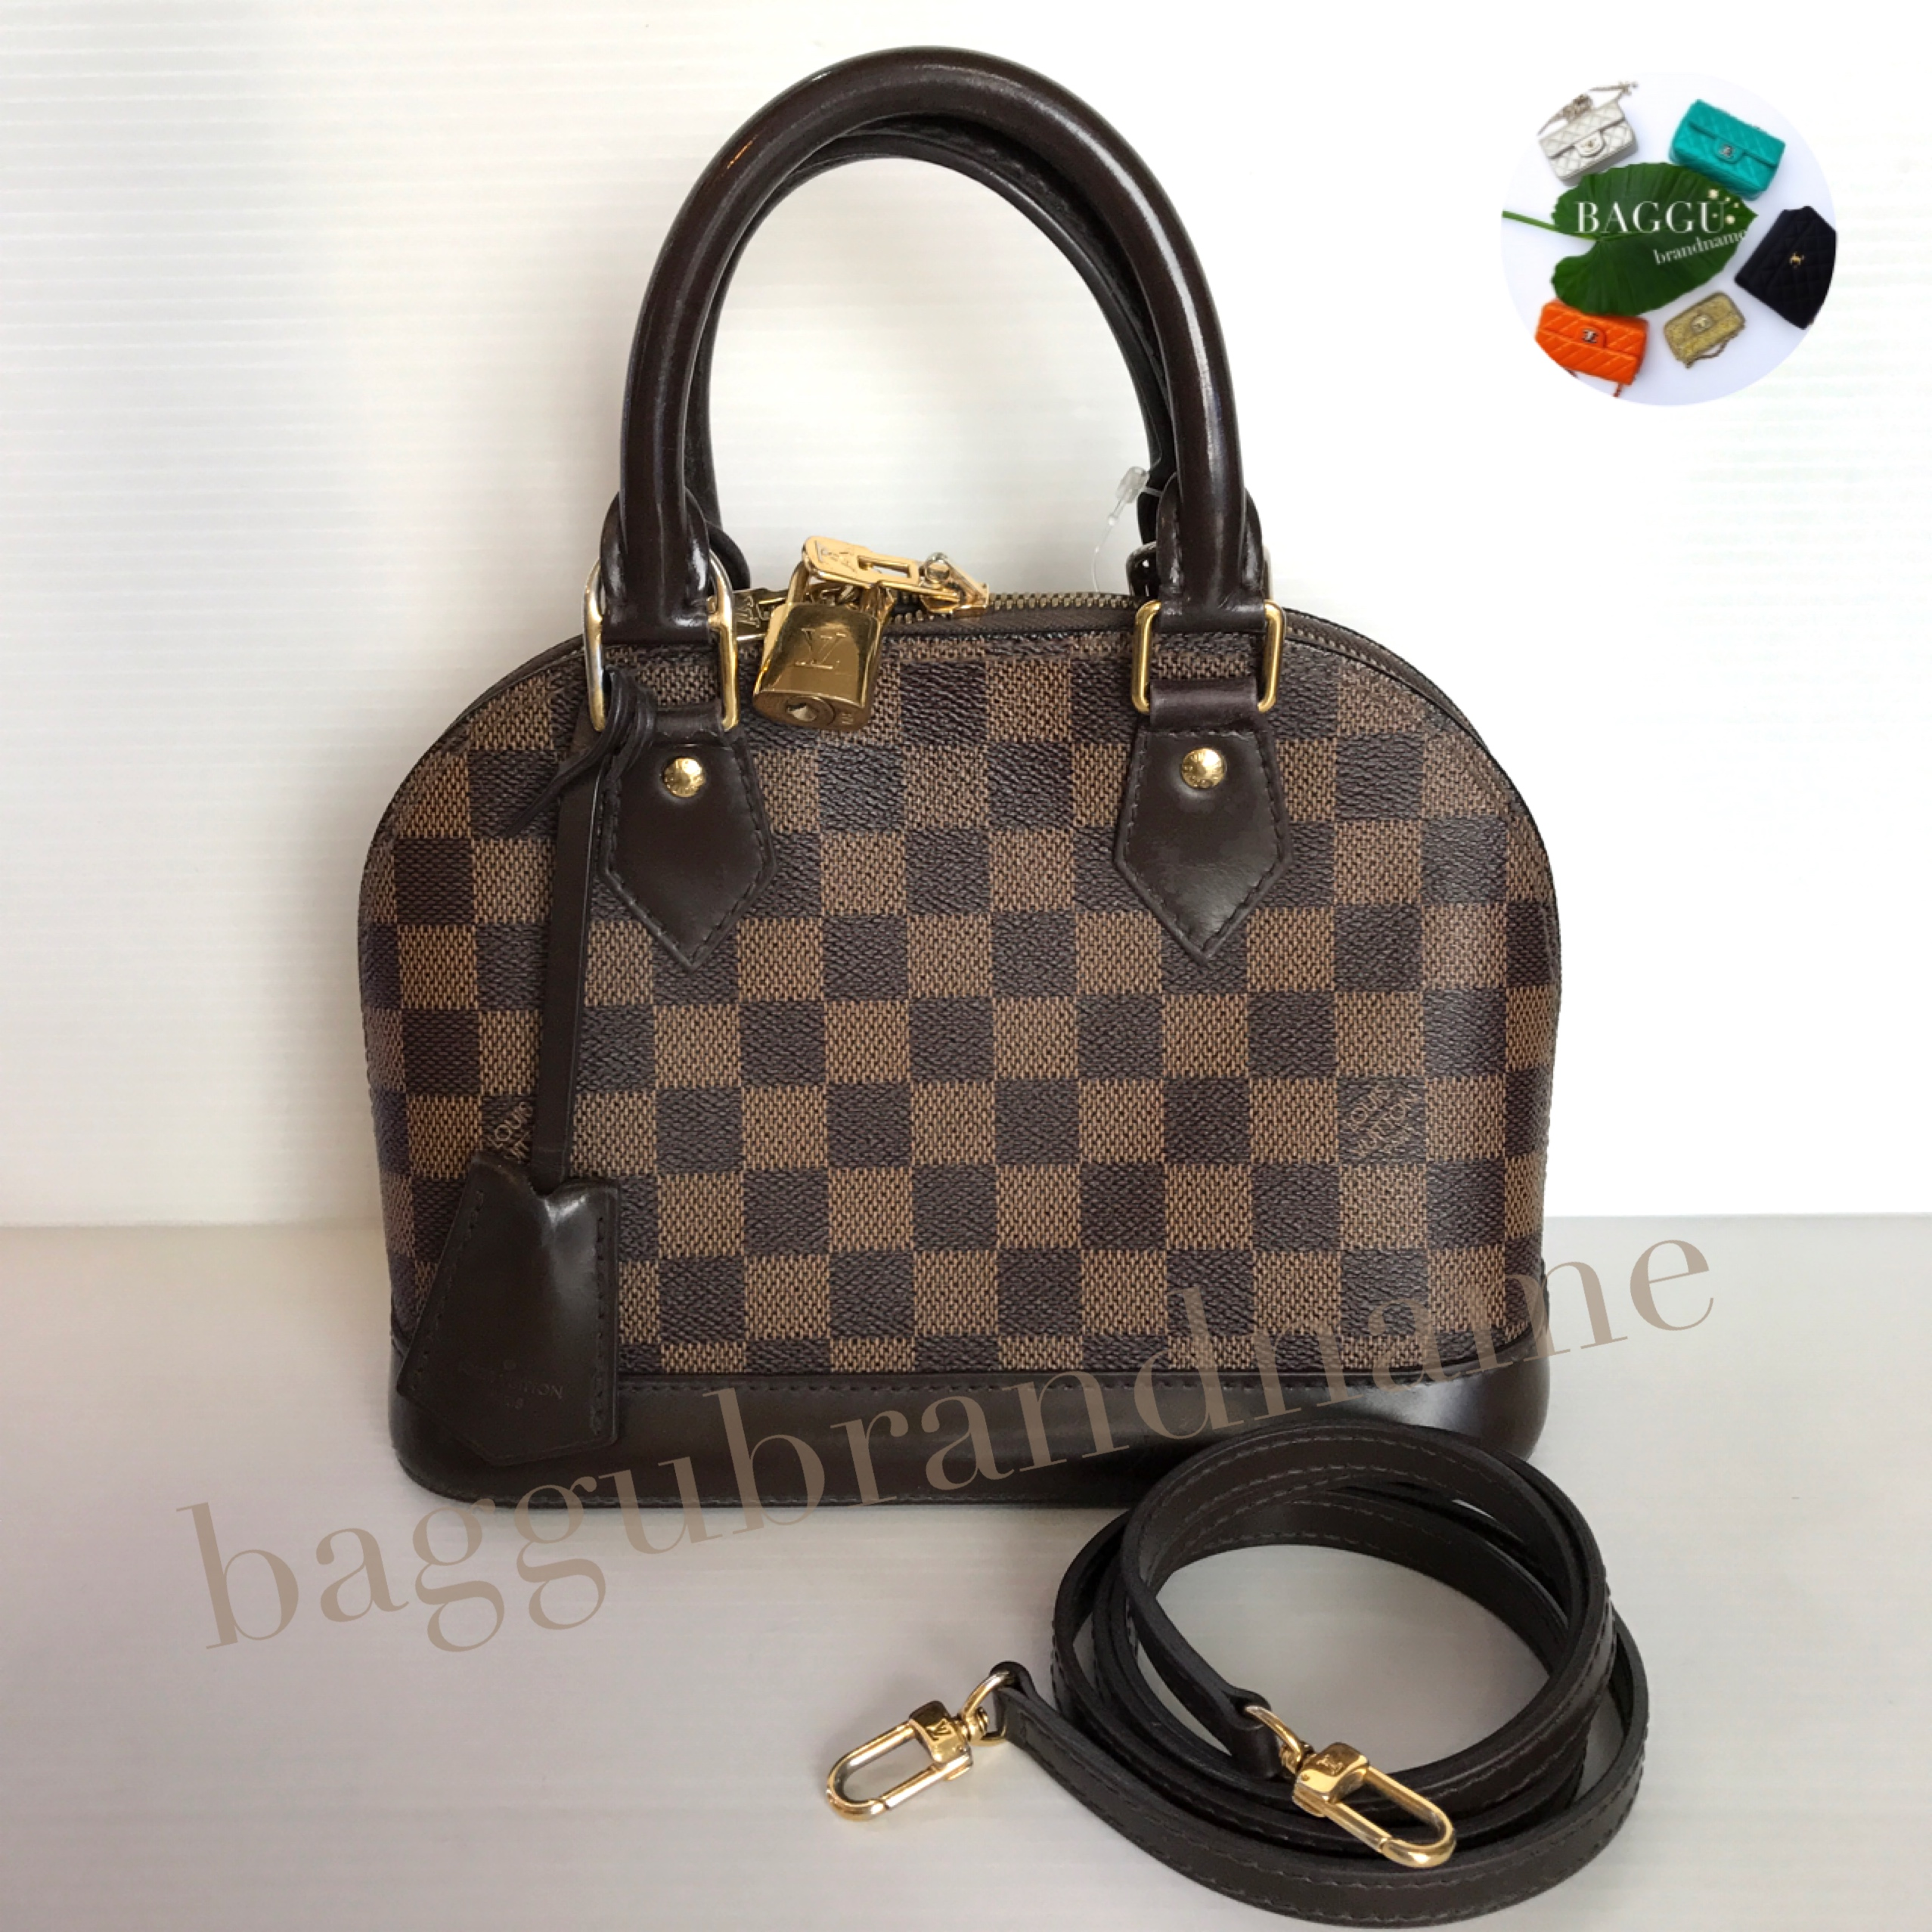 (SOLD OUT)LOUISVUITTON damier ebene alma bb ปี 13